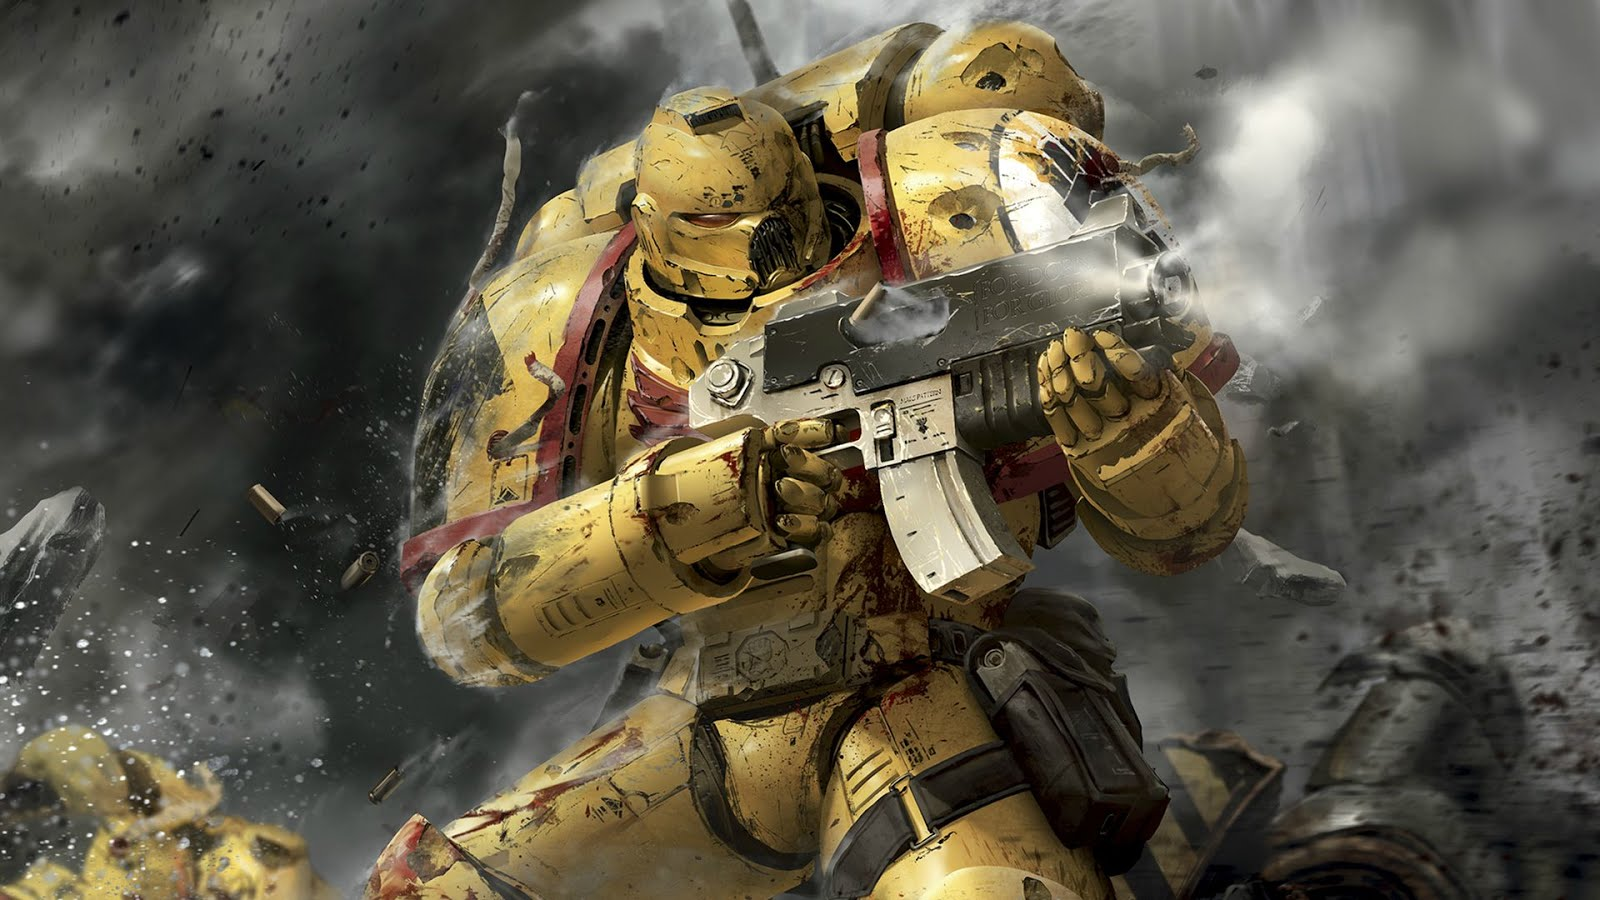 The Imperial Fists...